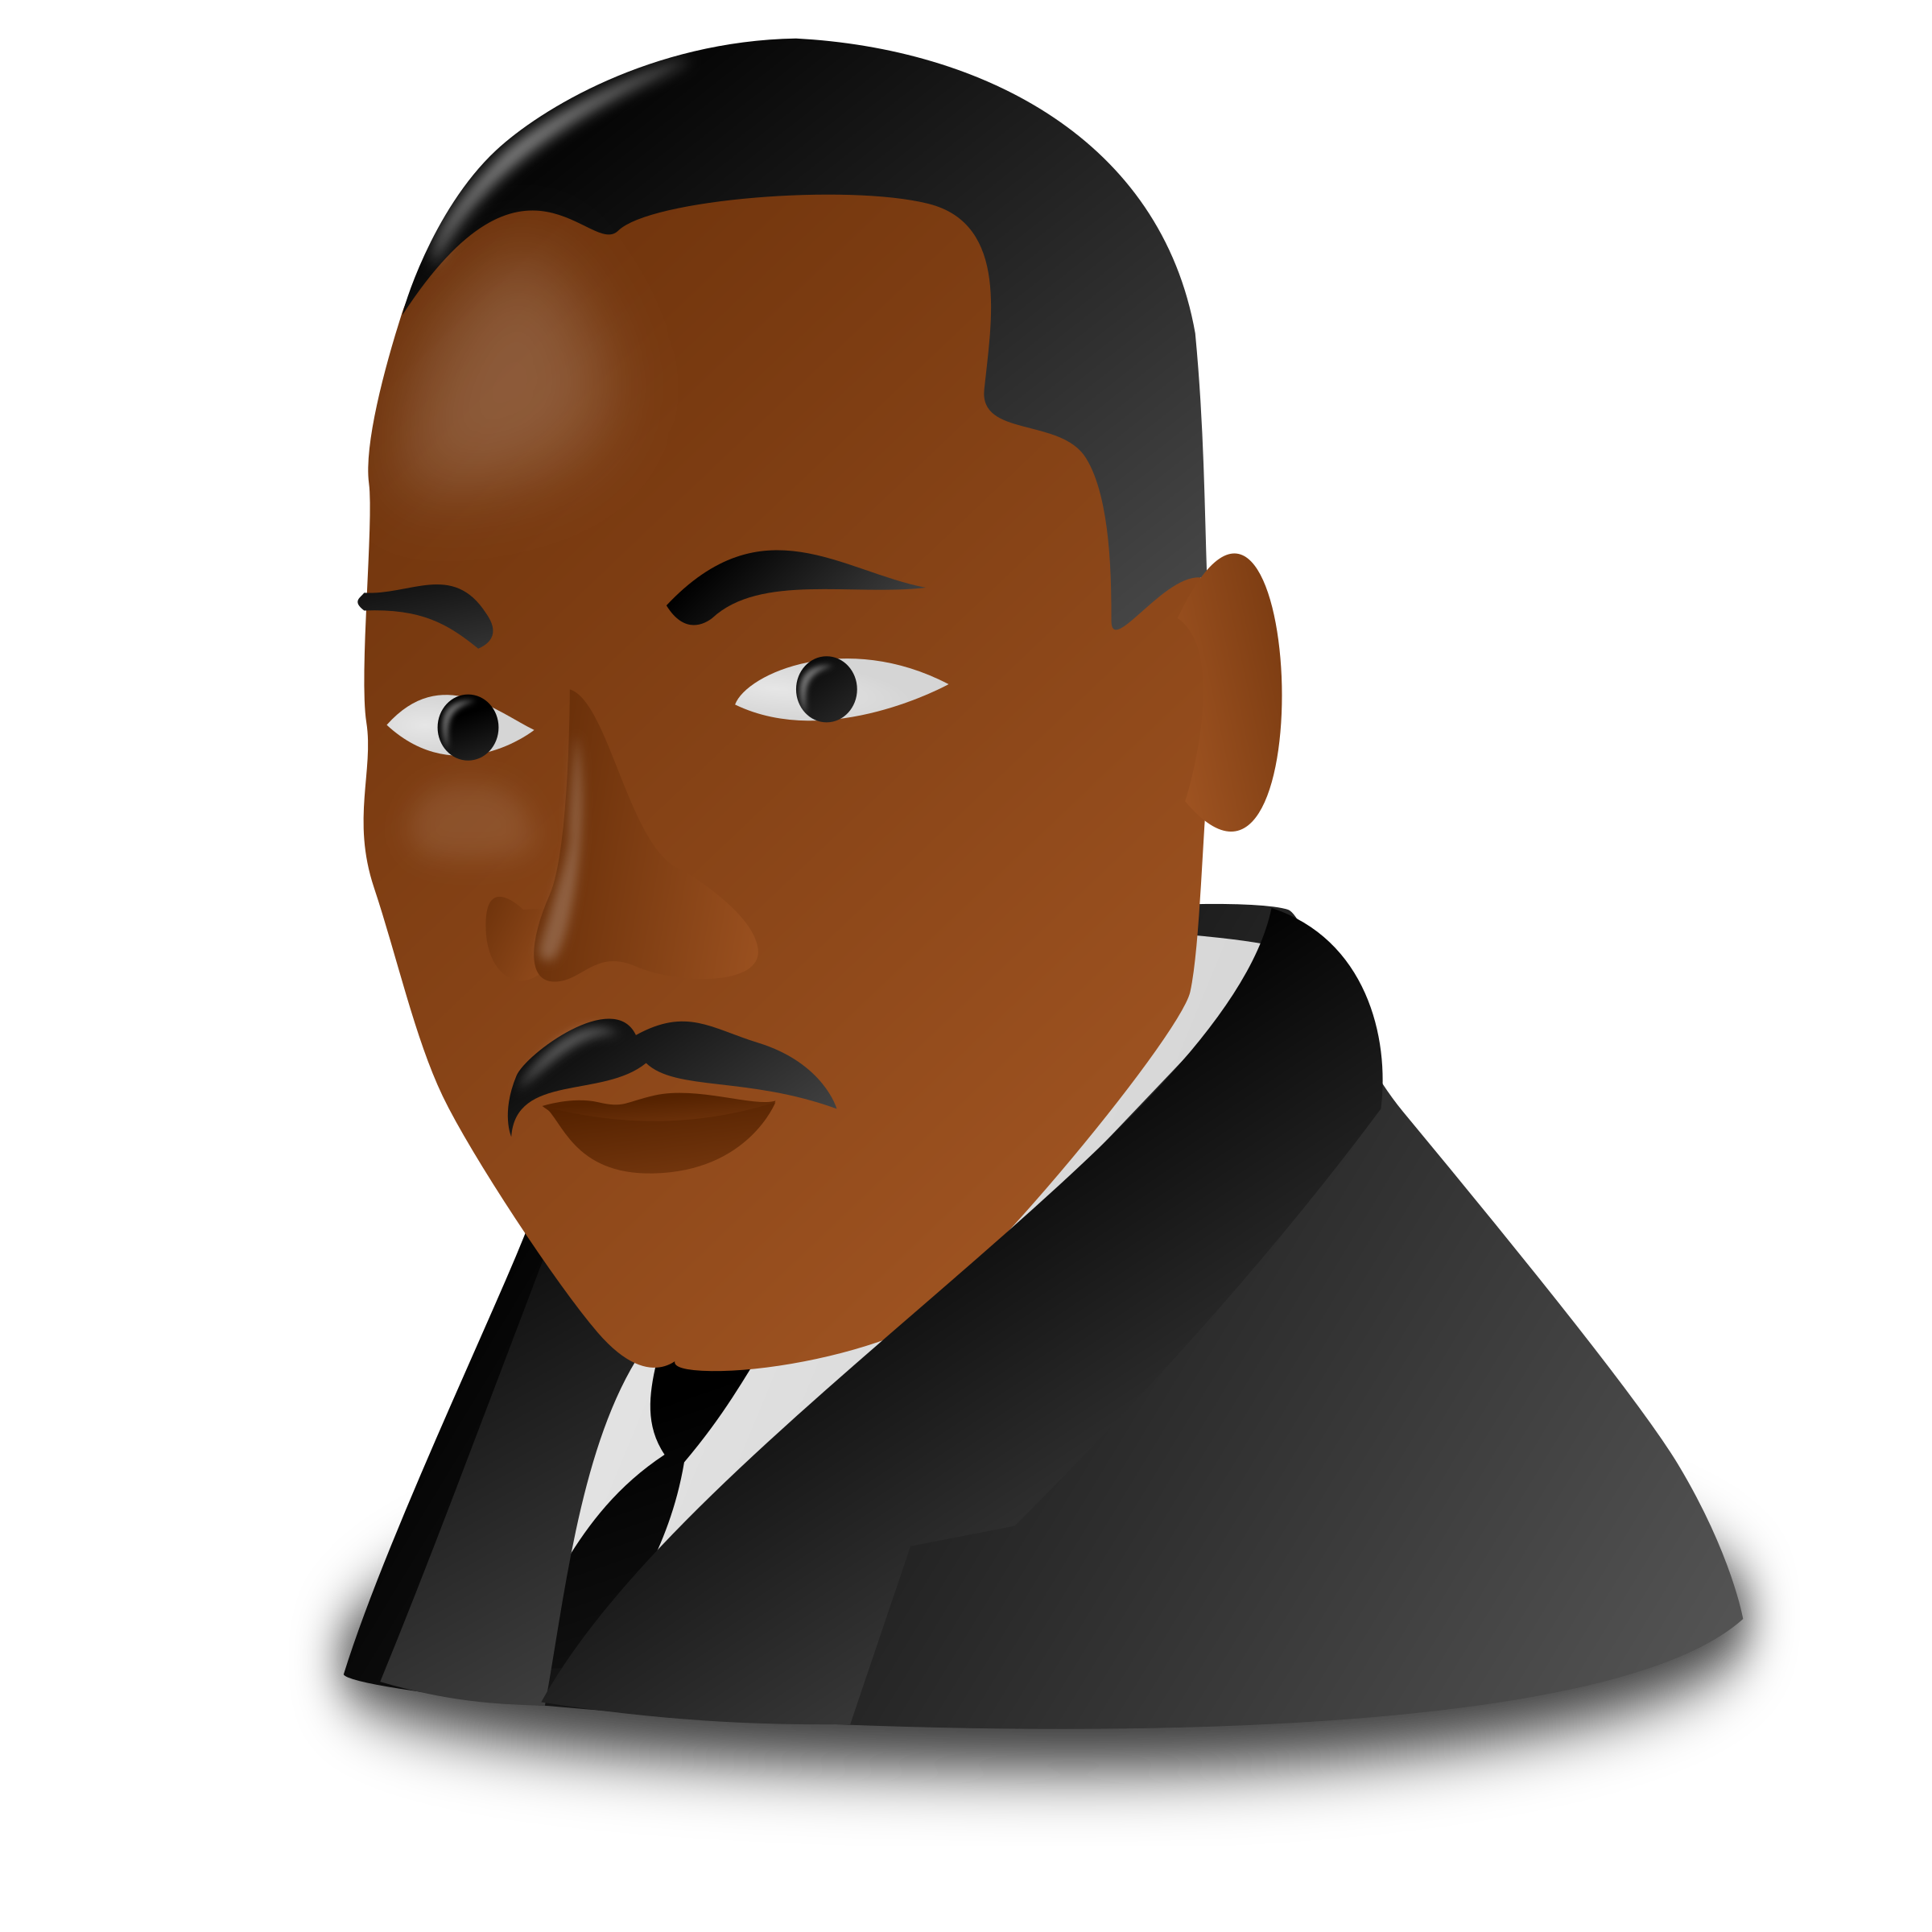 King day icon big. Martin luther jr clipart clip art